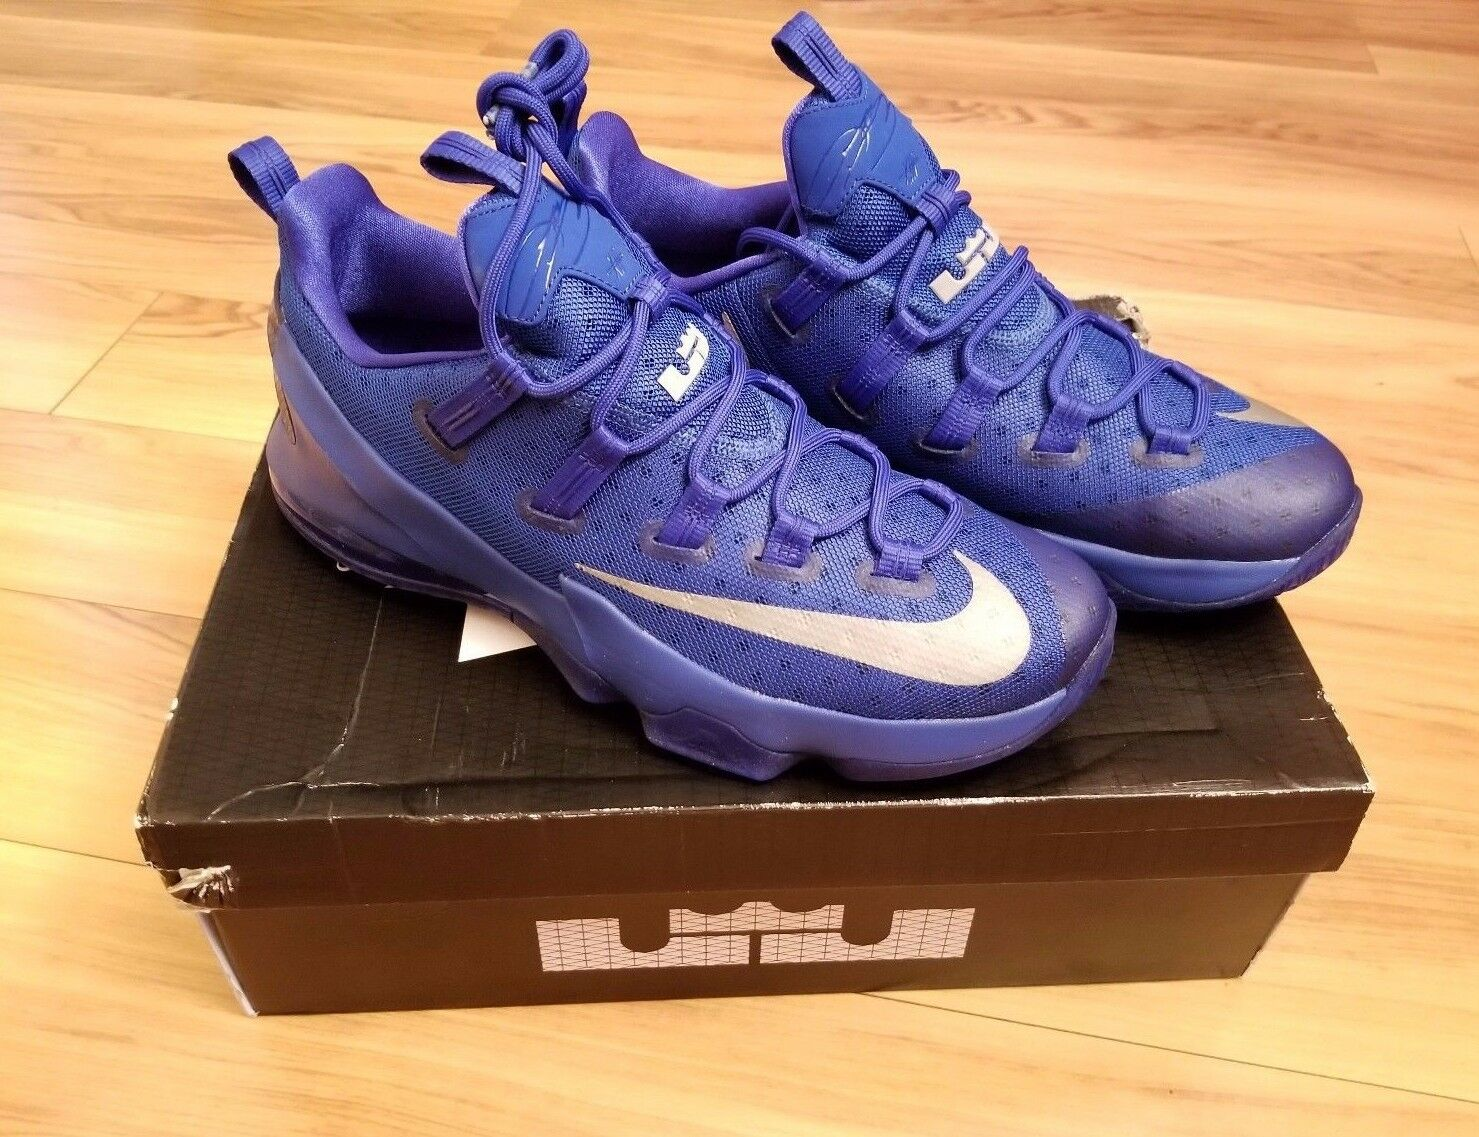 New-In-Box! Nike Lebron James 13 Price reduction Low Shoes Men's Comfortable Special limited time